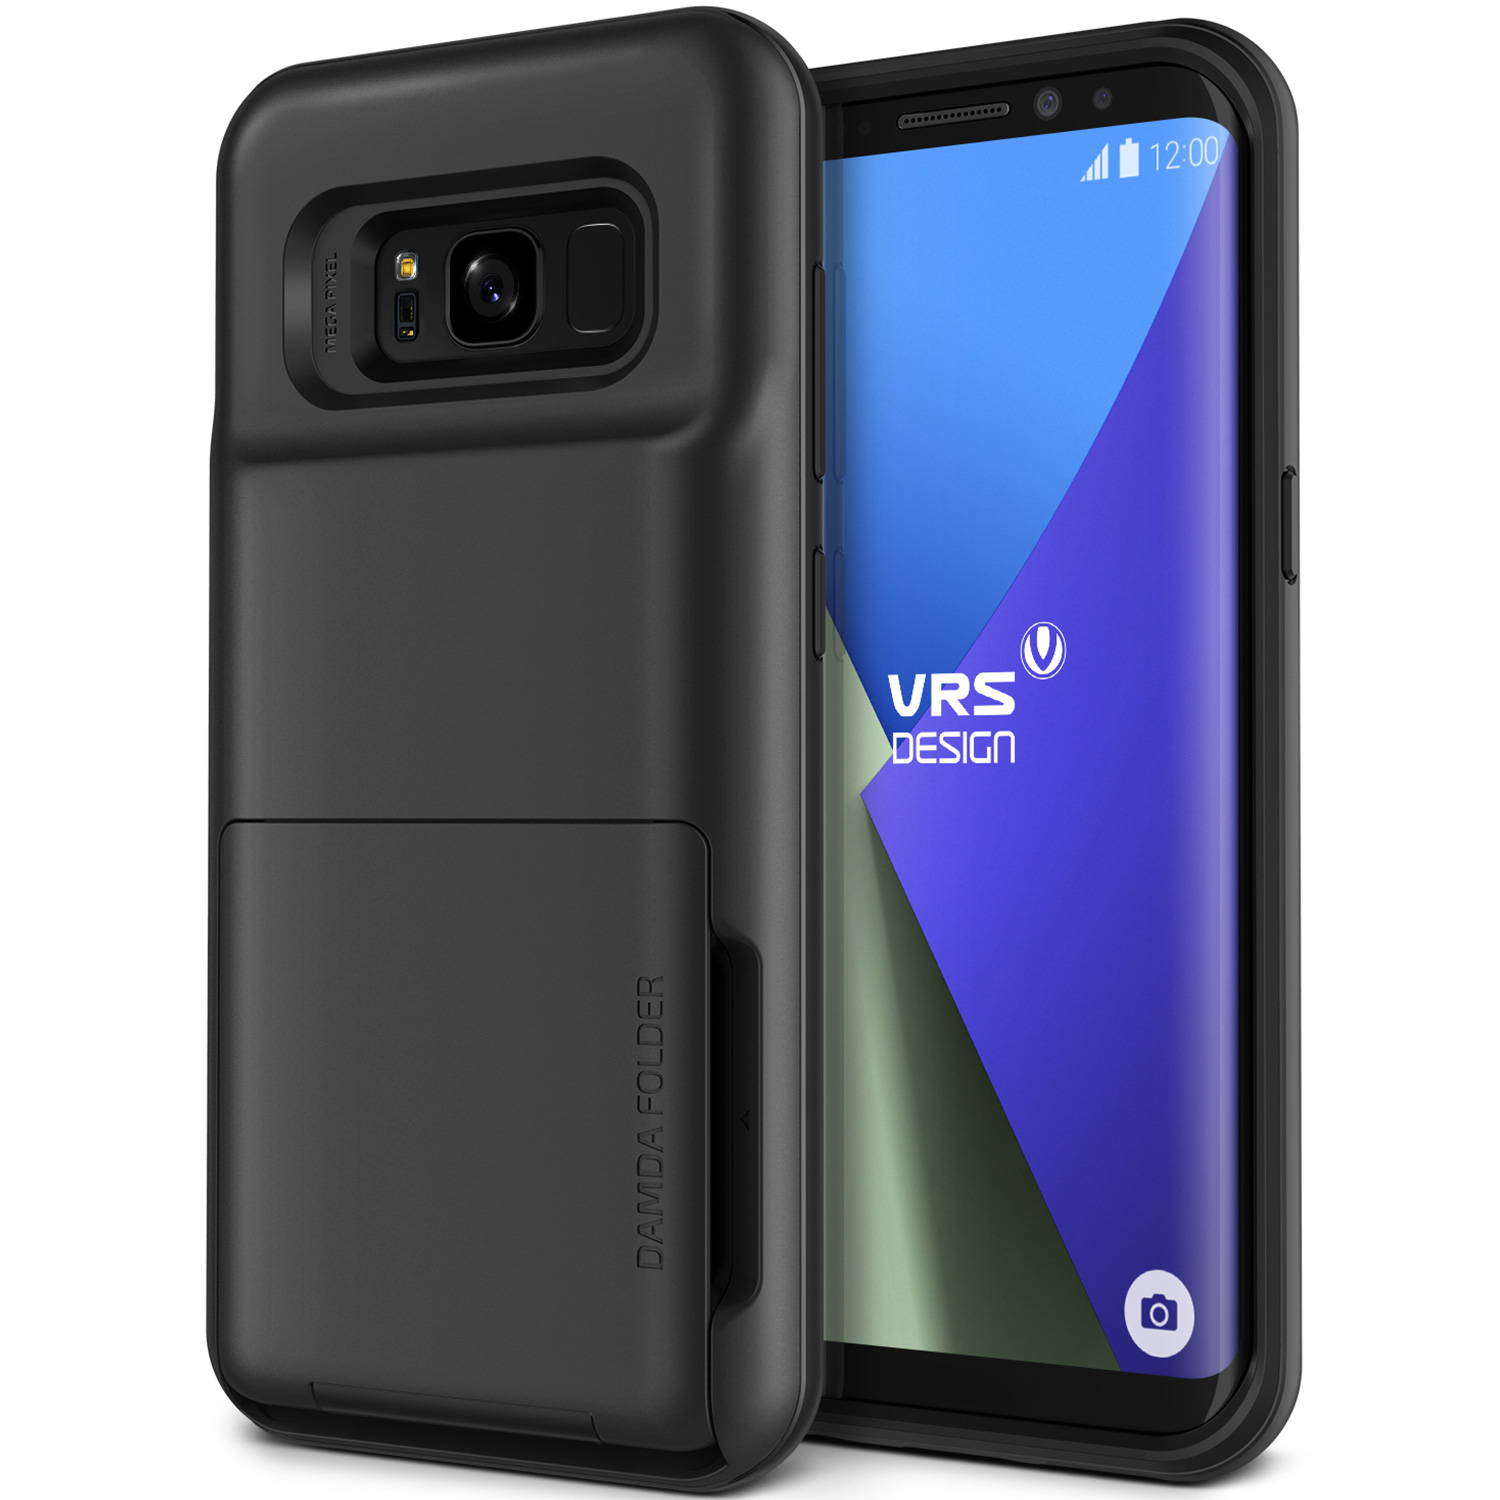 Samsung Galaxy S8 Plus Case Cover | Protective Wallet with Card Slots | VRS Design Damda Folder for Samsung Galaxy S8 Plus